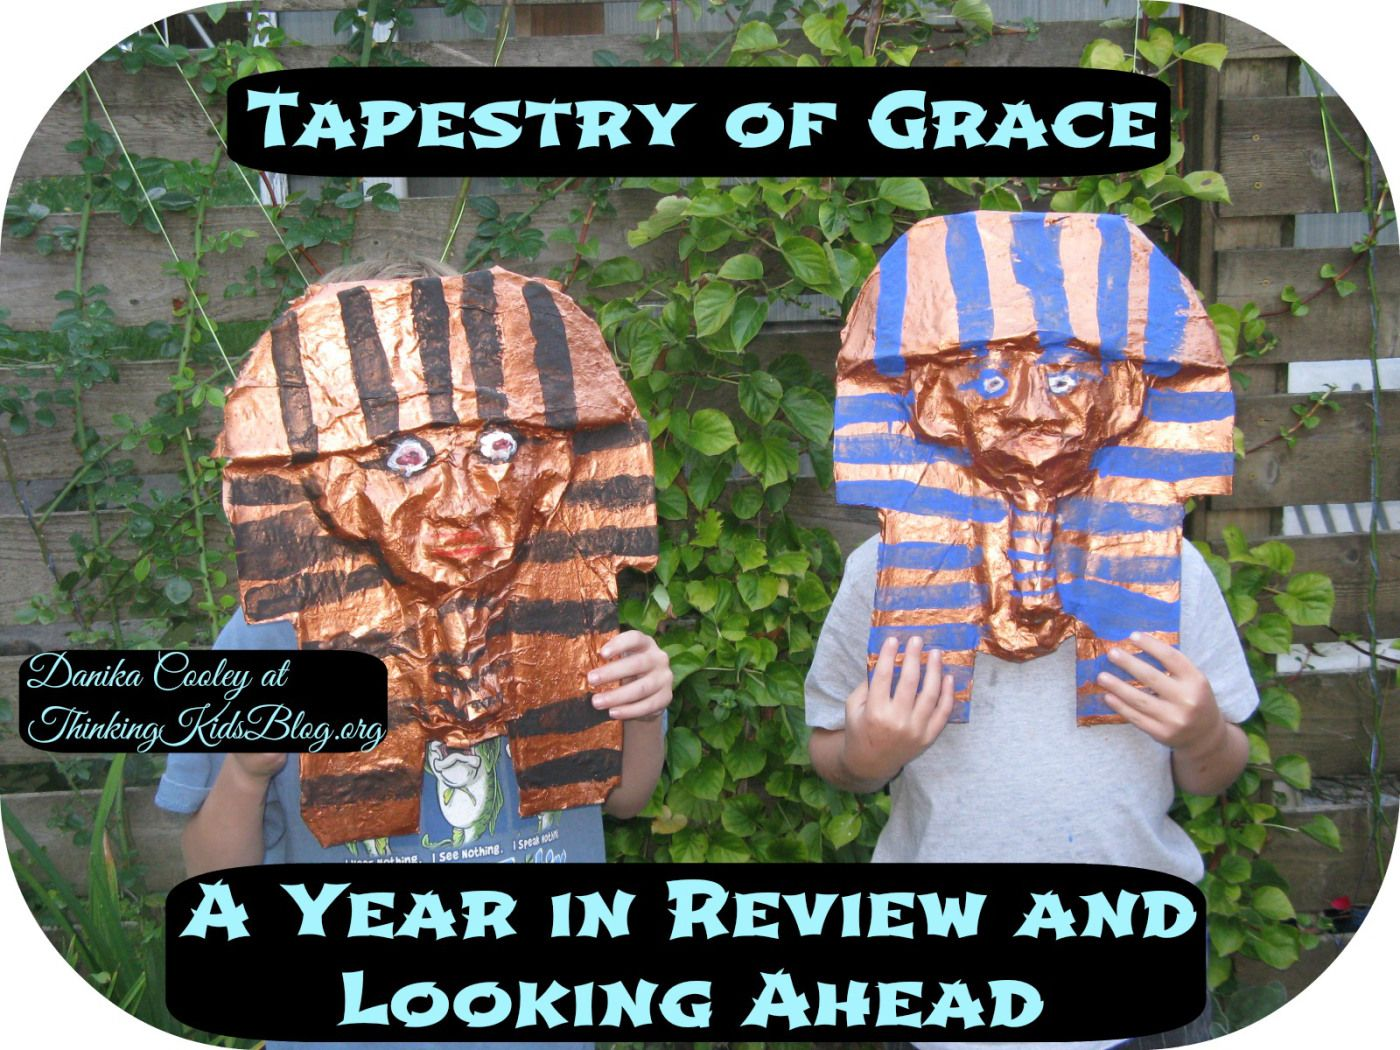 Tapestry of Grace ~ A Year in Review and Looking Ahead  Danika Cooley at ThinkingKidsBlog.org